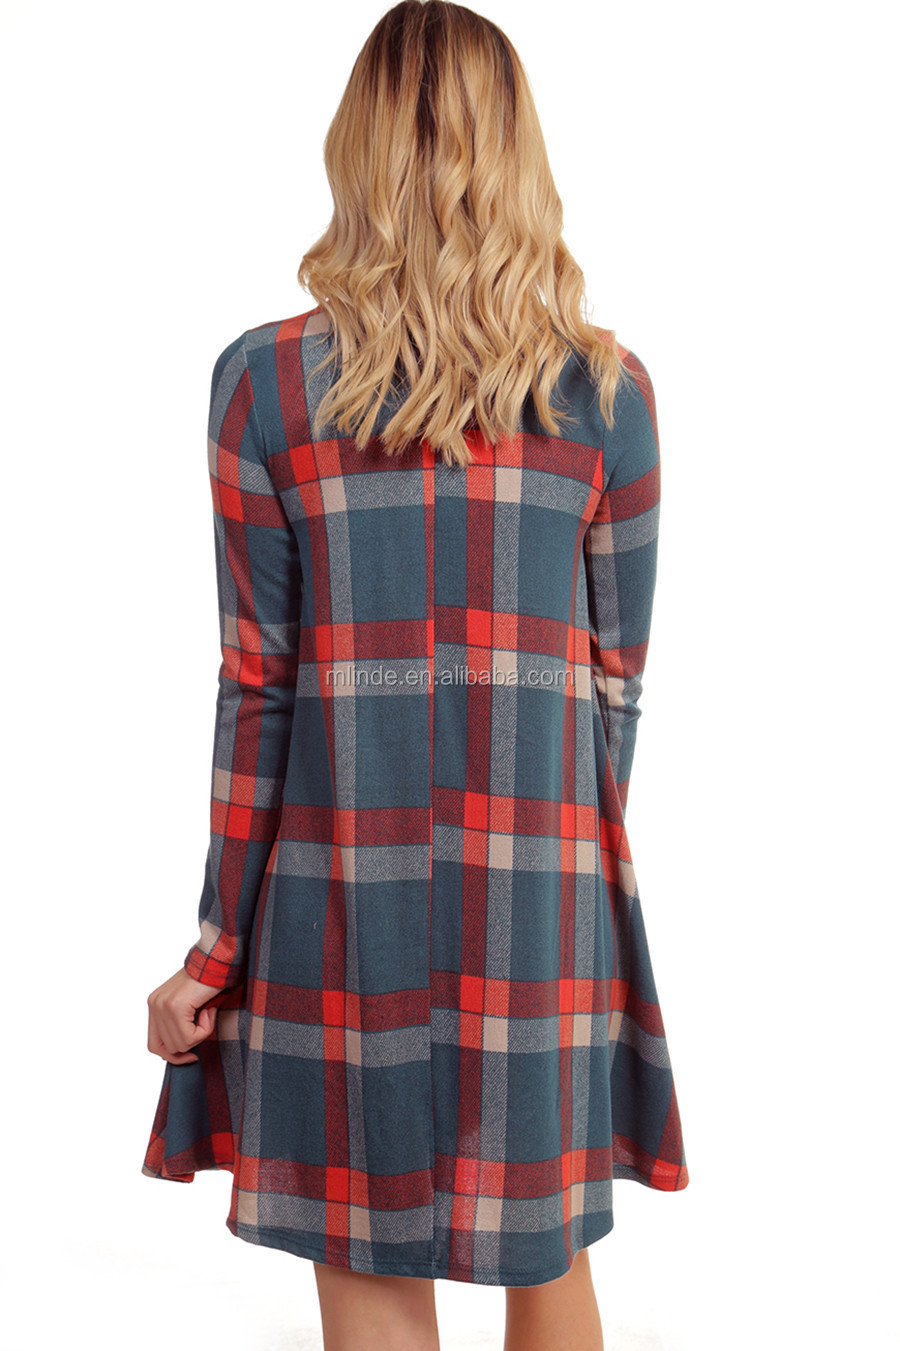 import high quality plus size XXXXL USA women mock neck plaid checked winter spring fashion dress chinese clothing manufacturers